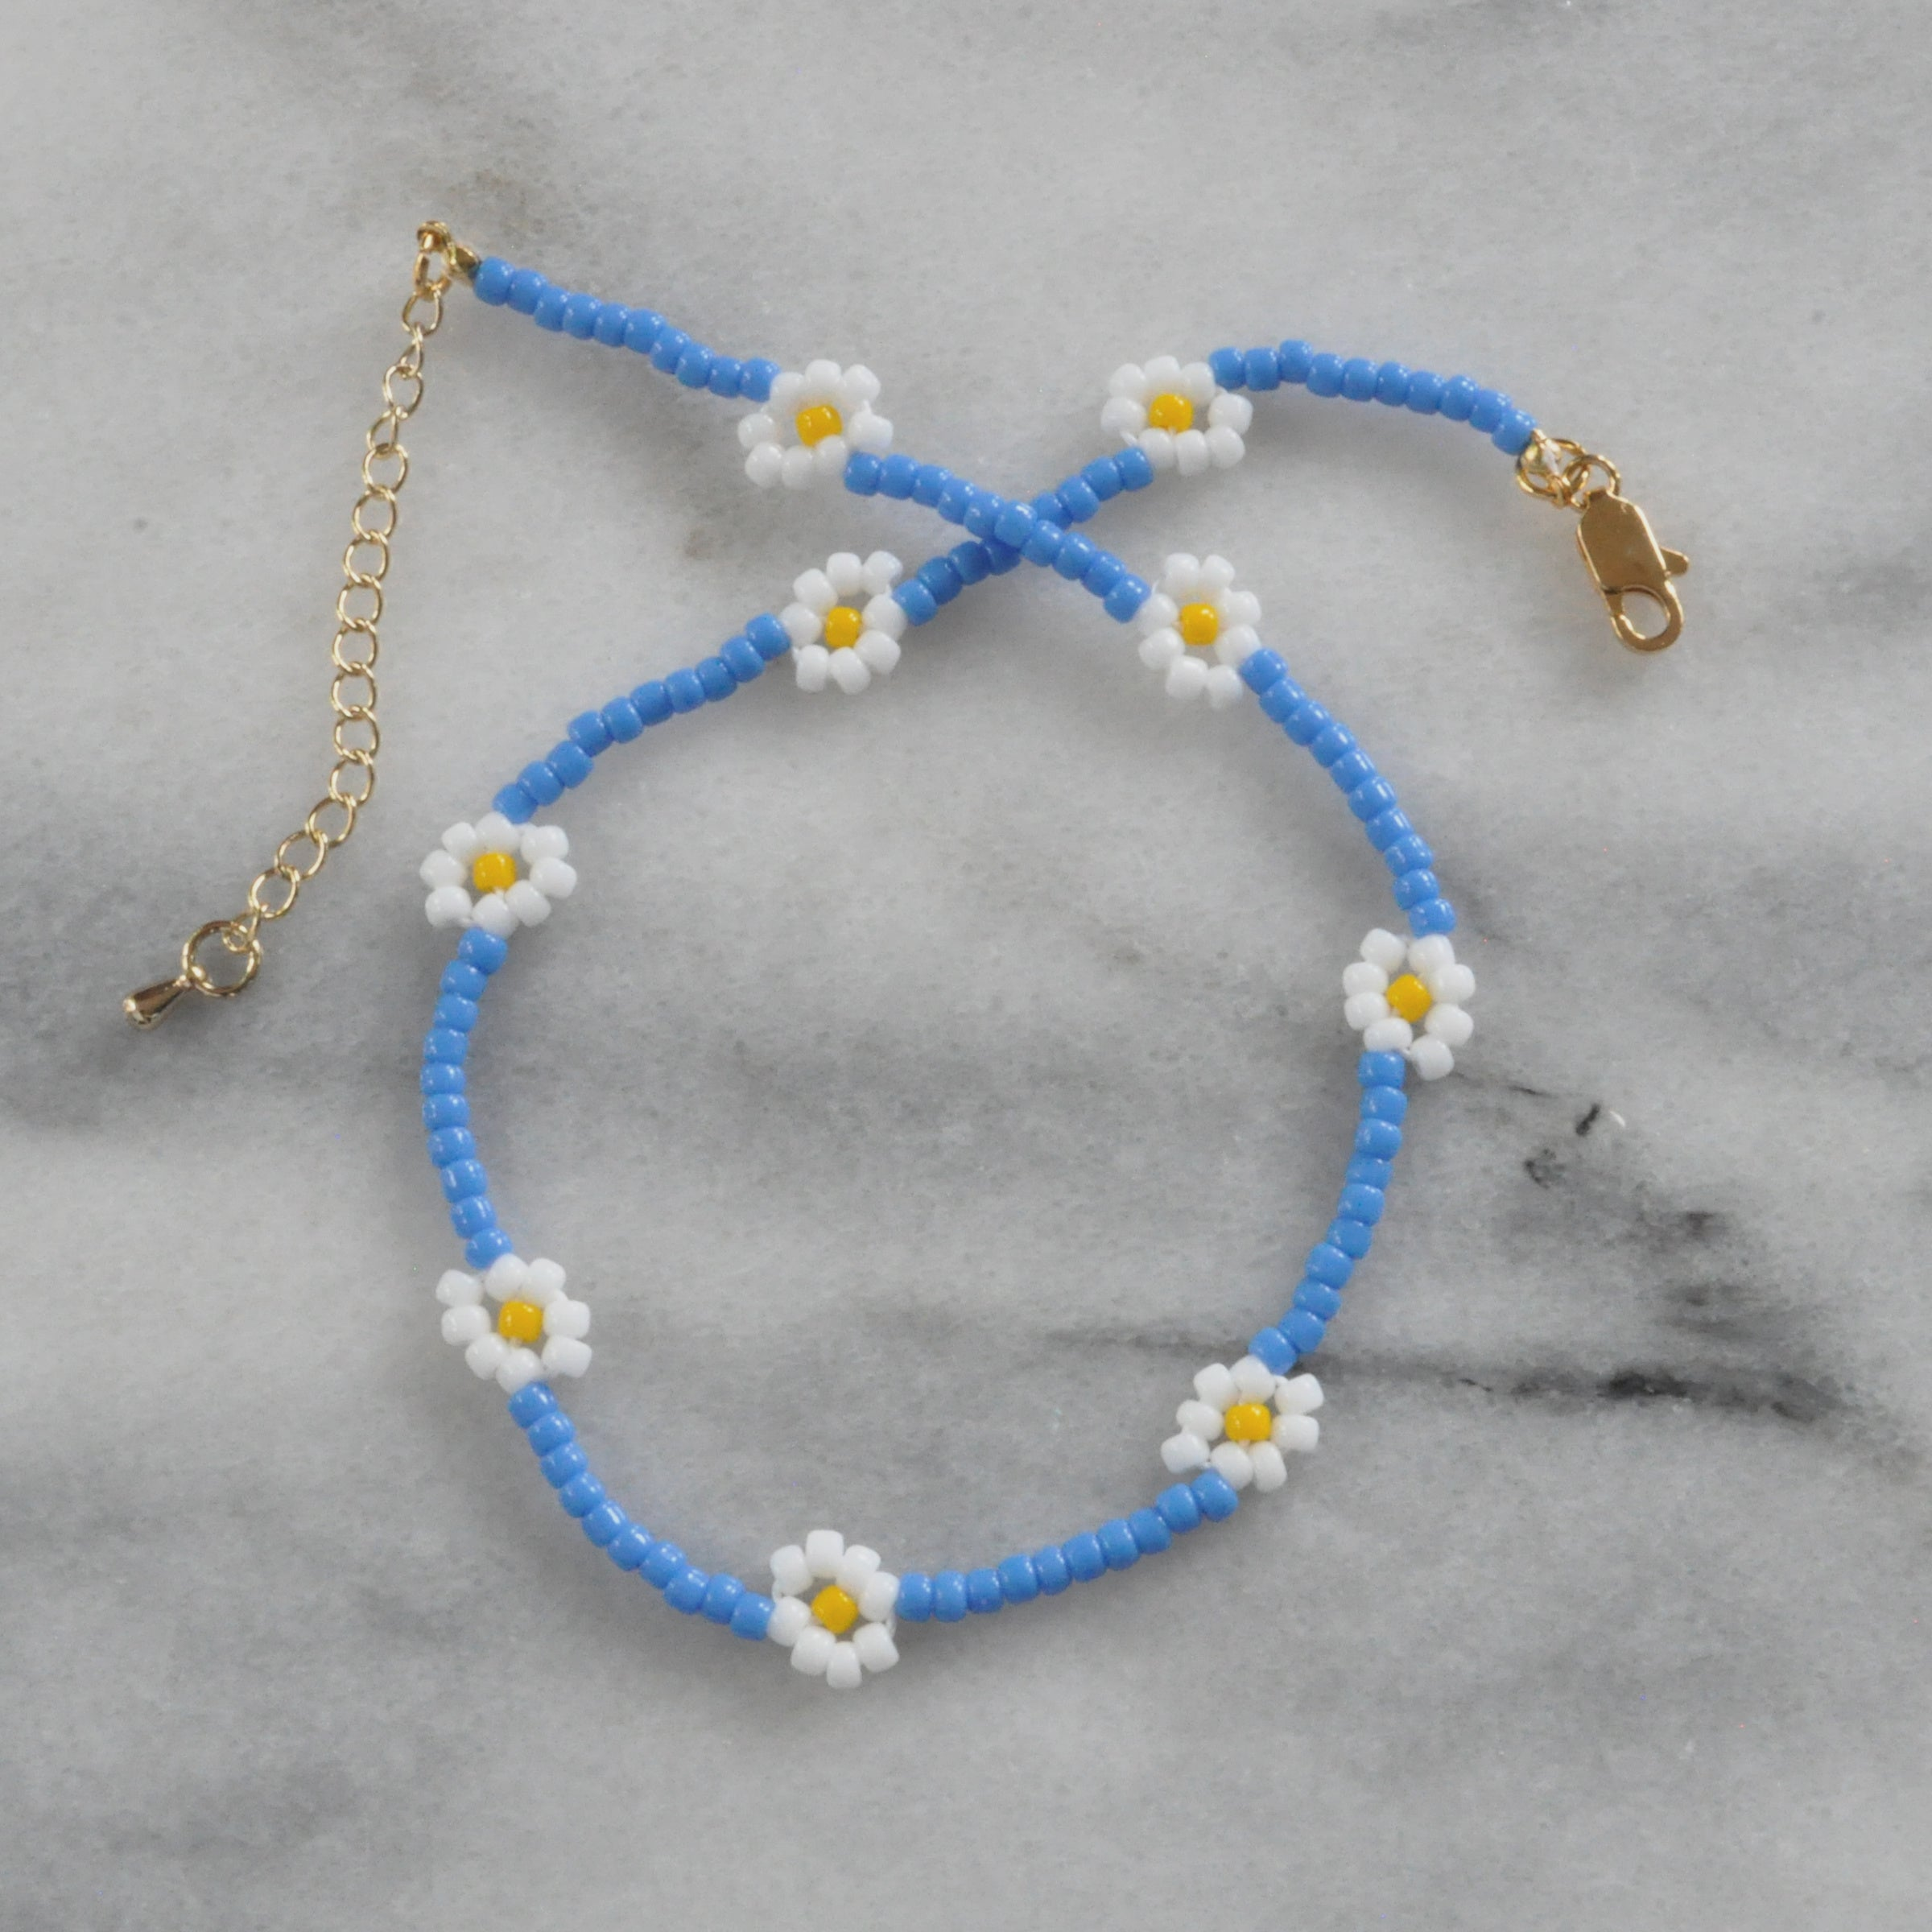 Libby & Smee daisy Chain choker in pool blue